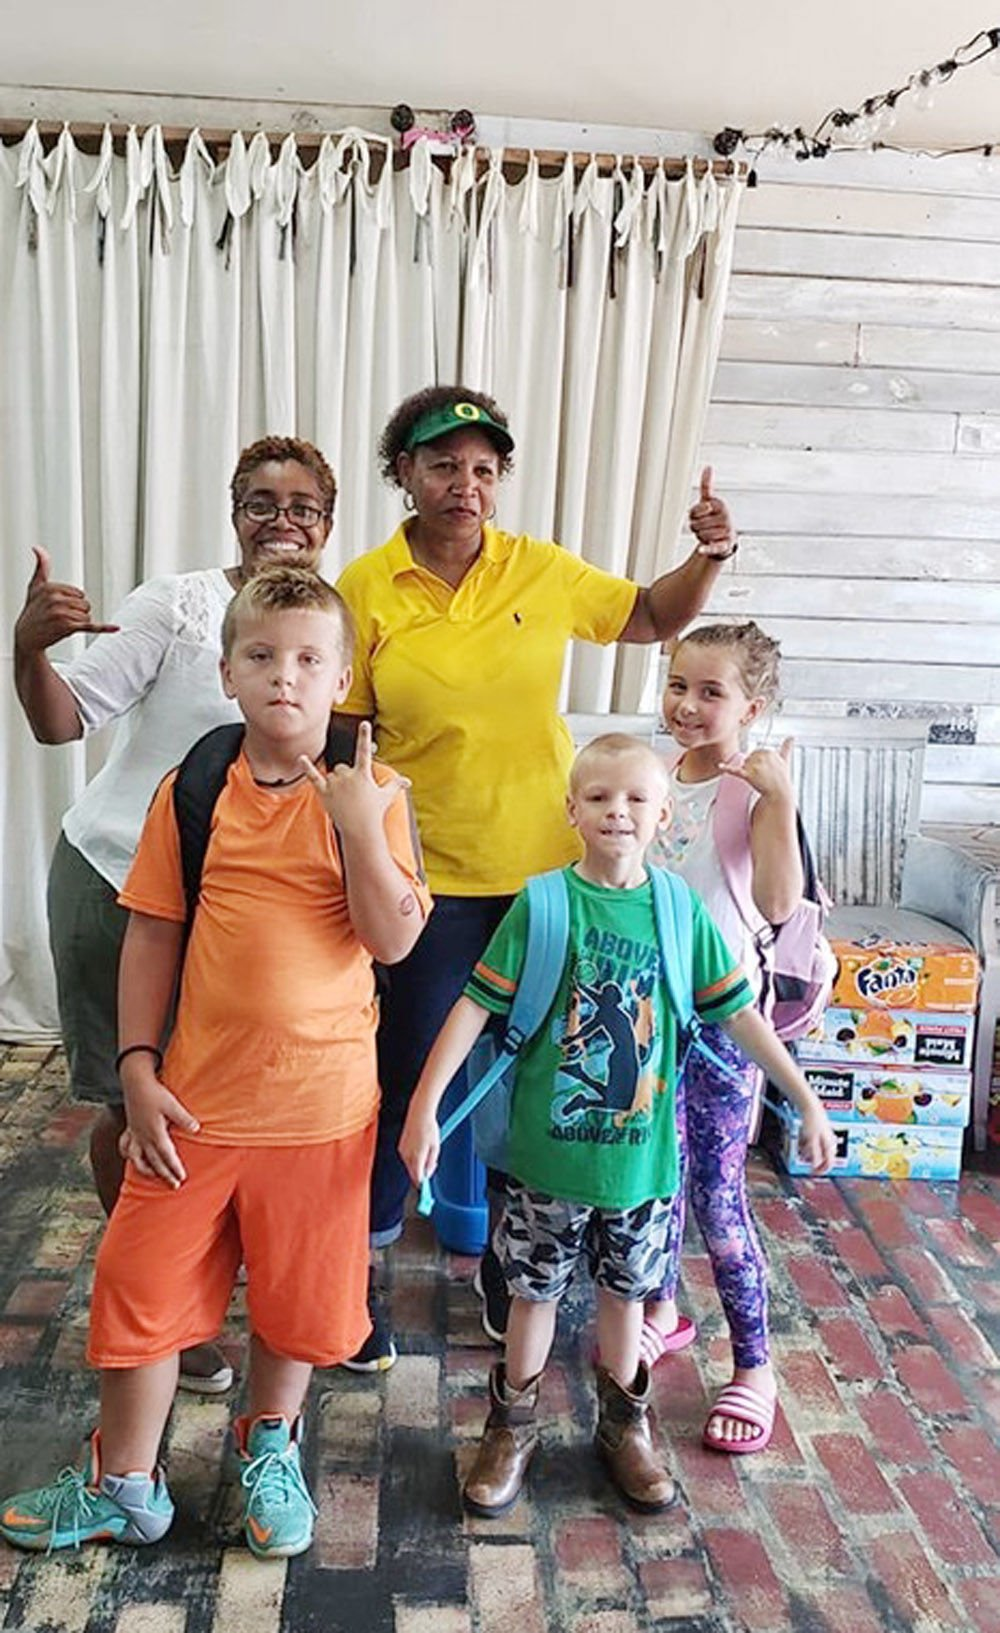 Mullins military veterans give back to community with school supplies